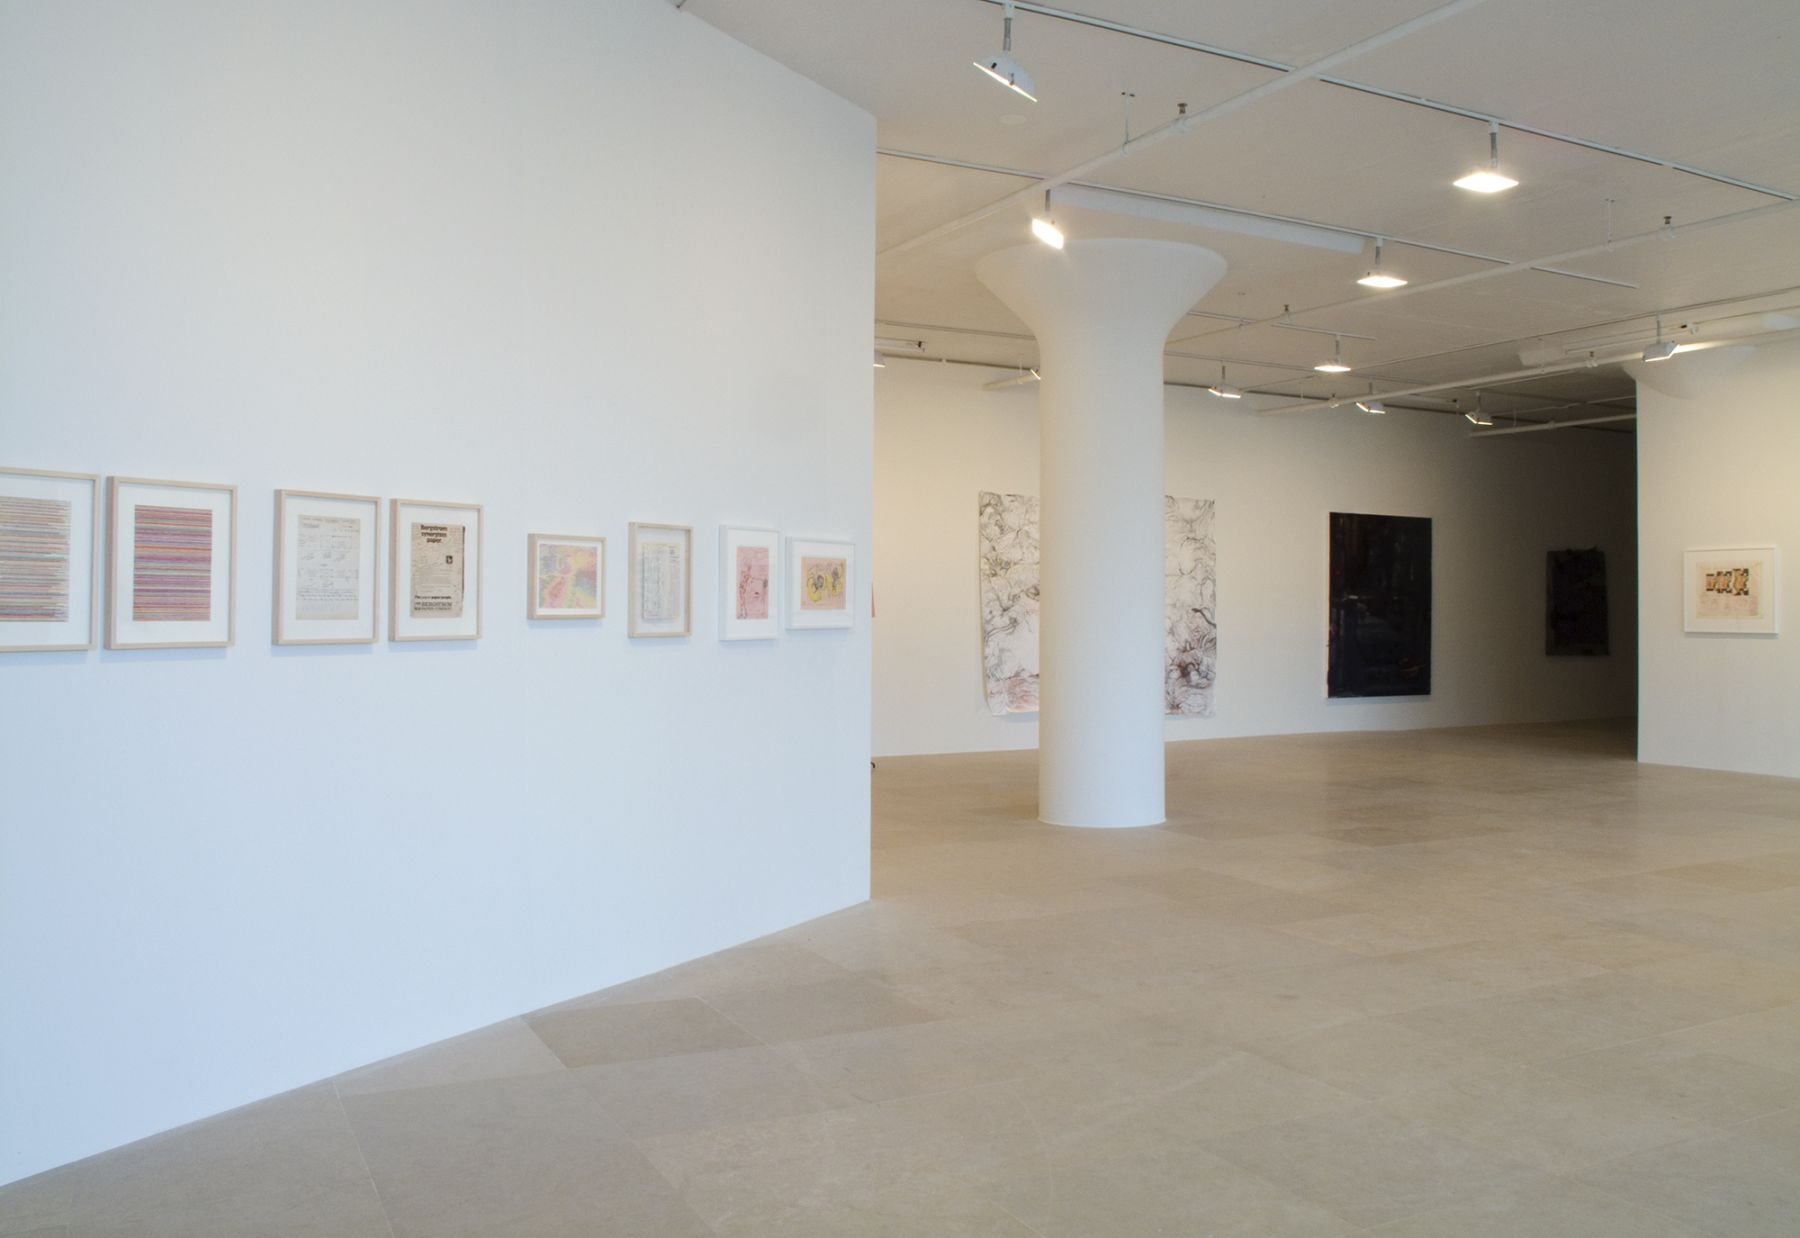 Installation view, The Pursuer, Greene Naftali, New York, 2010